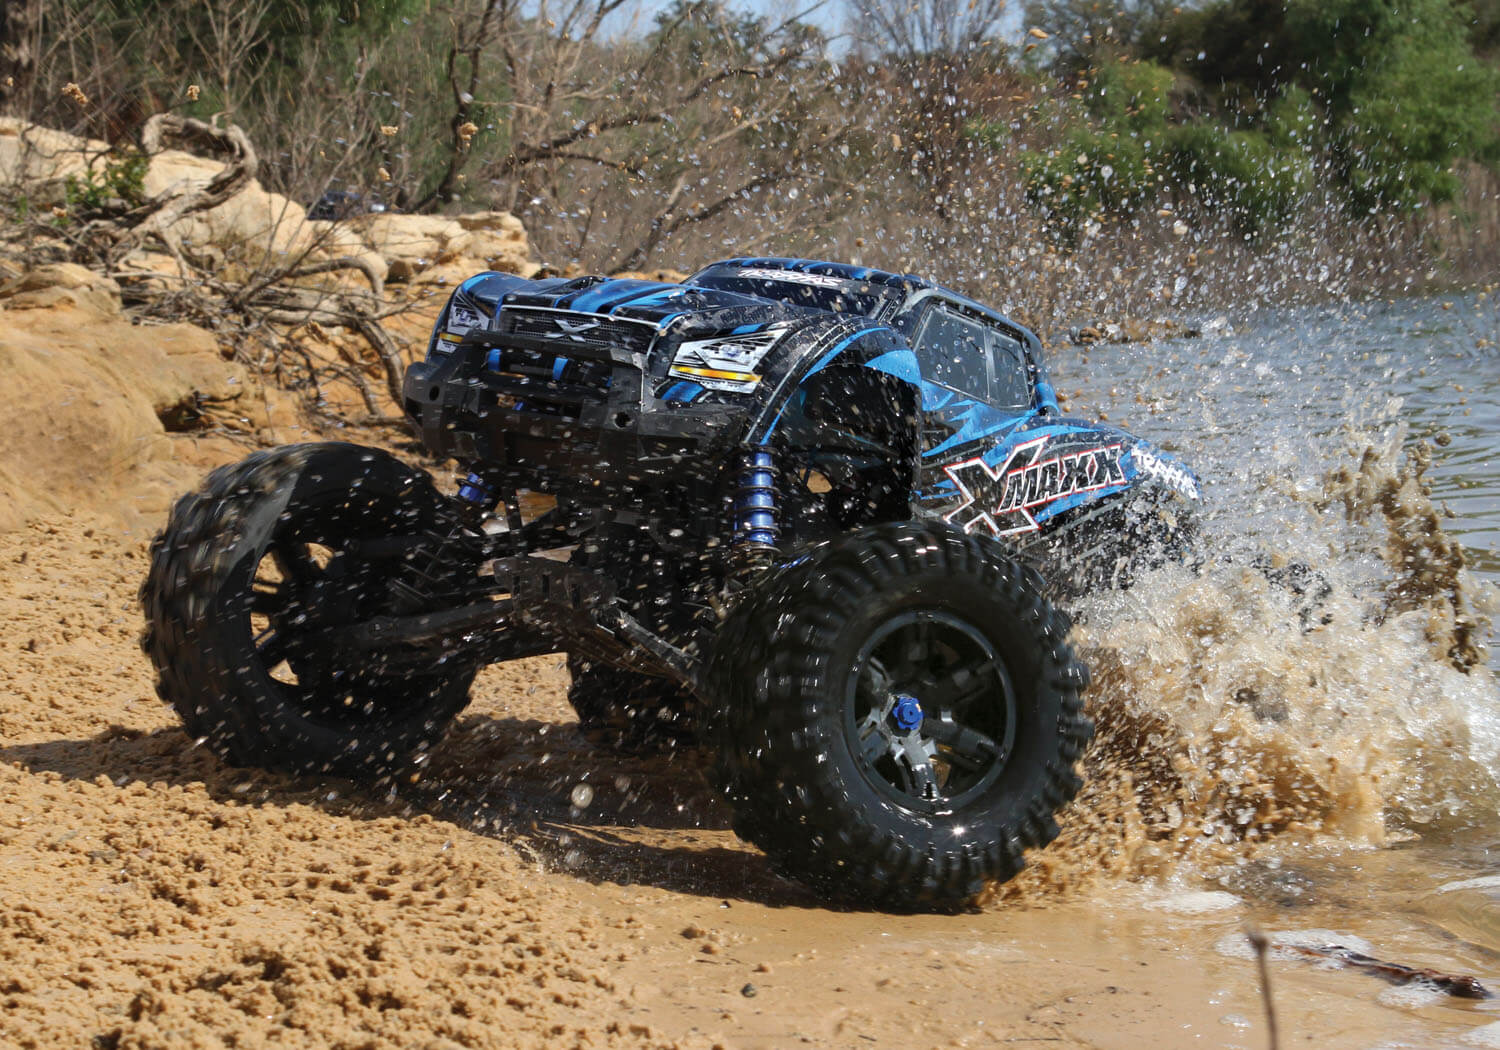 fast rc trucks for sale with Traxxas X Maxx The Lowdown on Watch furthermore Image Hydraulic Loading R s For Trucks in addition 1110434 the 2017 Ford Raptor Merges Awd And 4wd besides Traxxas X Maxx The Lowdown together with 604 Mud Thrashers 1 9 Scale 1x Tires.